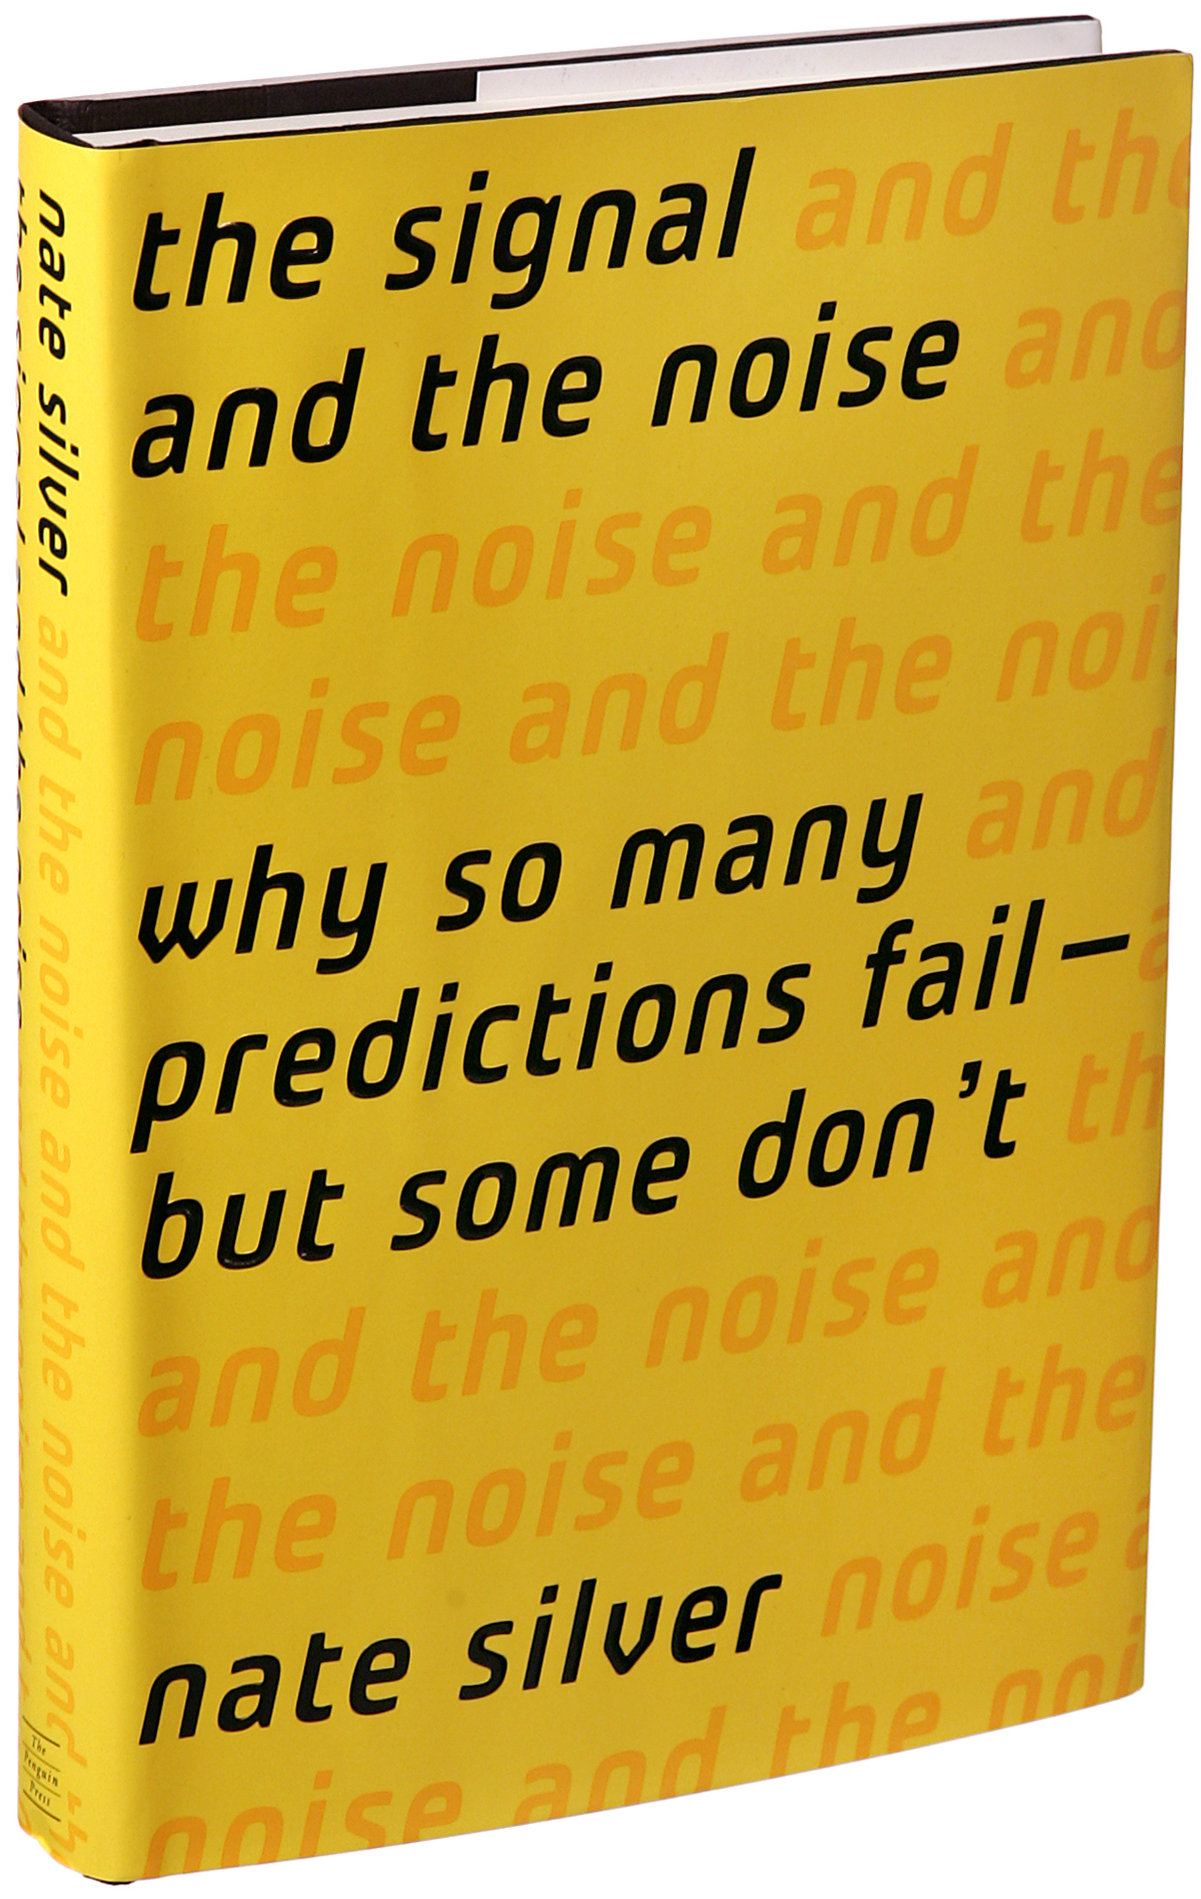 The Signal and the Noise: Why So Many Predictions Fail-but Some Don't - This book is so well written. It covers the importance and value of statistics in a vast number of fields. Nate Silver breaks down how to interpret meaningful data points and understand how they affect a given scenario. You can use this knowledge to start to see how data and predictions exist in your own life and how you can be smarter about them.